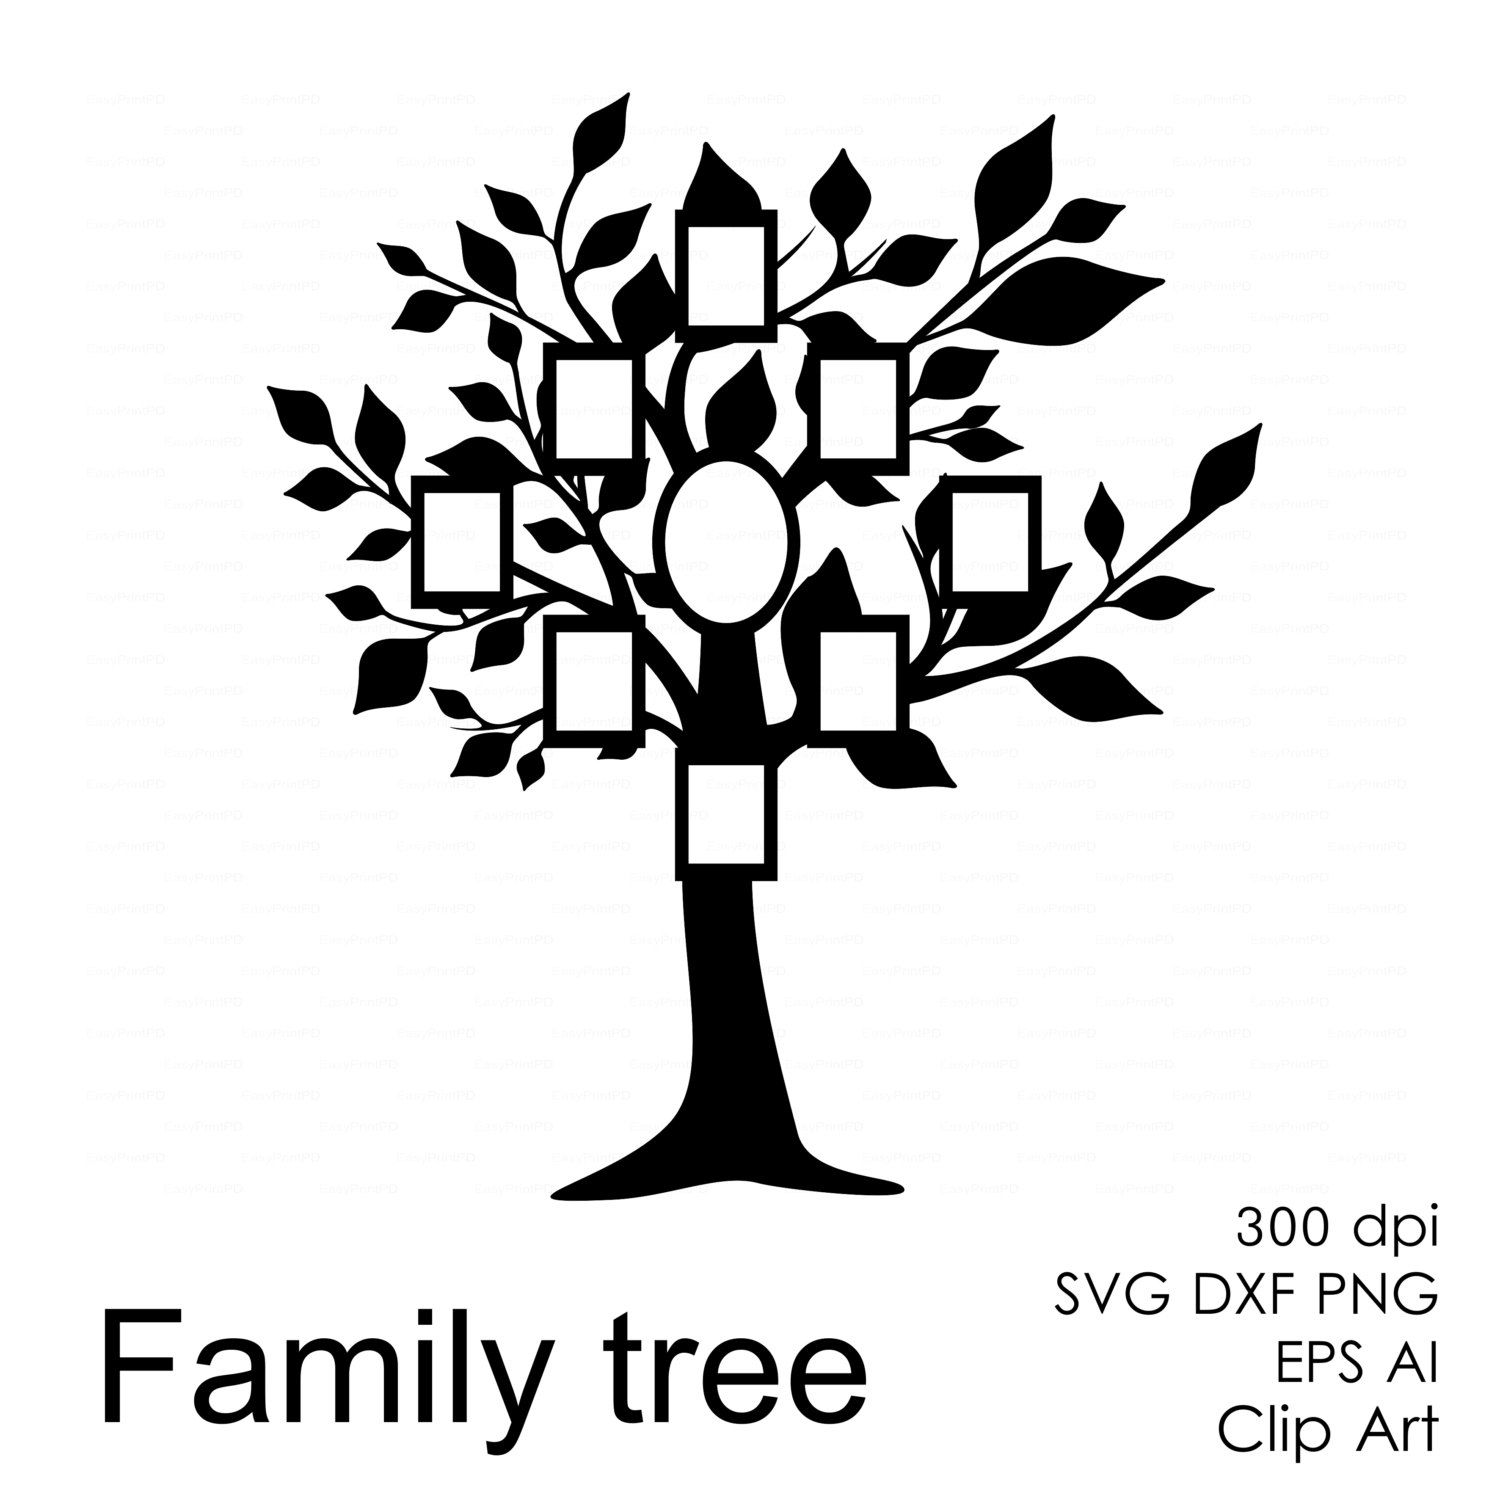 Family tree frame svg dxf ai eps png Clipart от